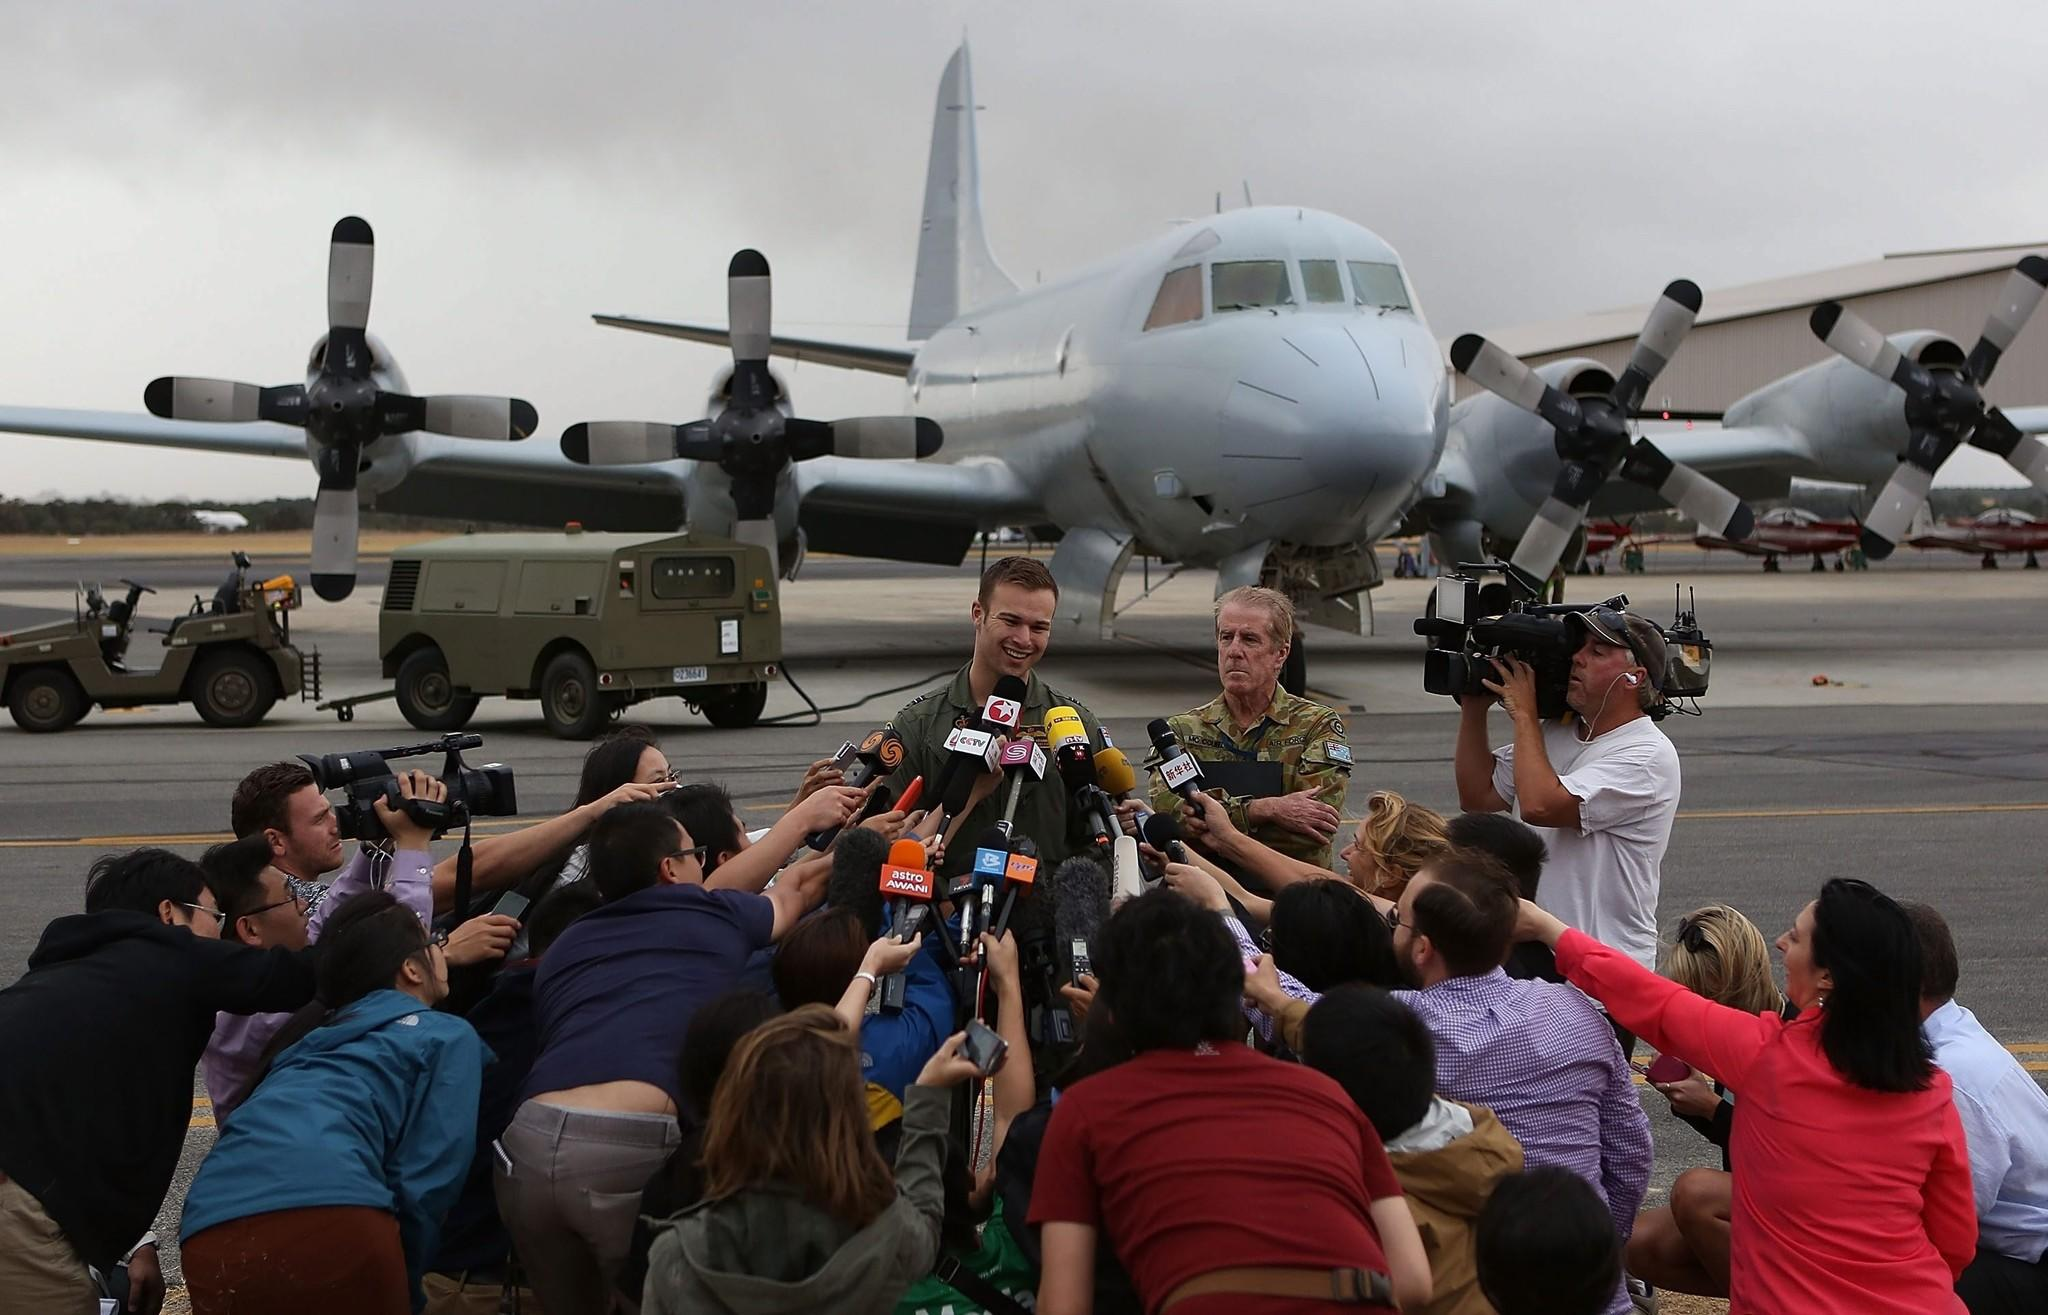 Flight Lt. Russell Adams of the Australian air force speaks to reporters in Perth after his AP-3C Orion returned from searching for wreckage from the missing Malaysia Airlines Flight 370.